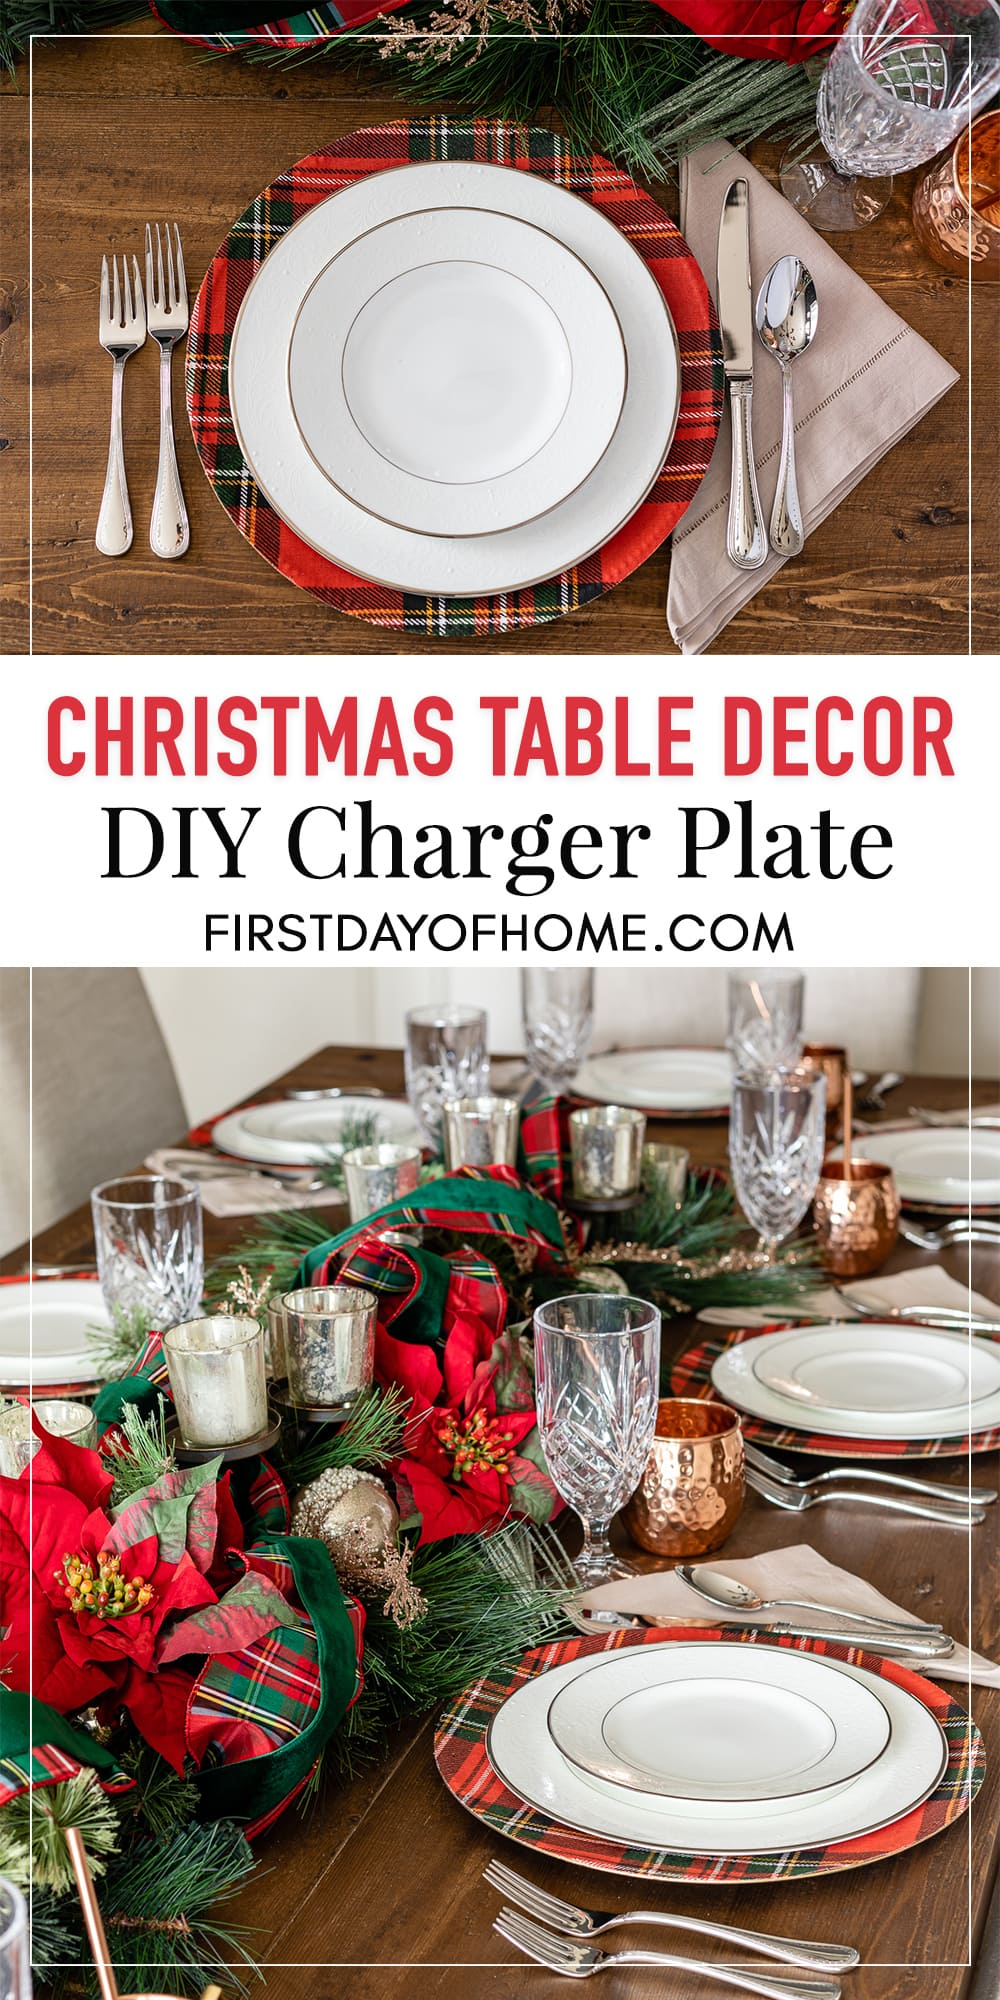 "Tablescape with tartan plaid DIY charger plates and Christmas centerpiece. Pinterest pin that reads ""Christmas table decor, DIY charger plate"""